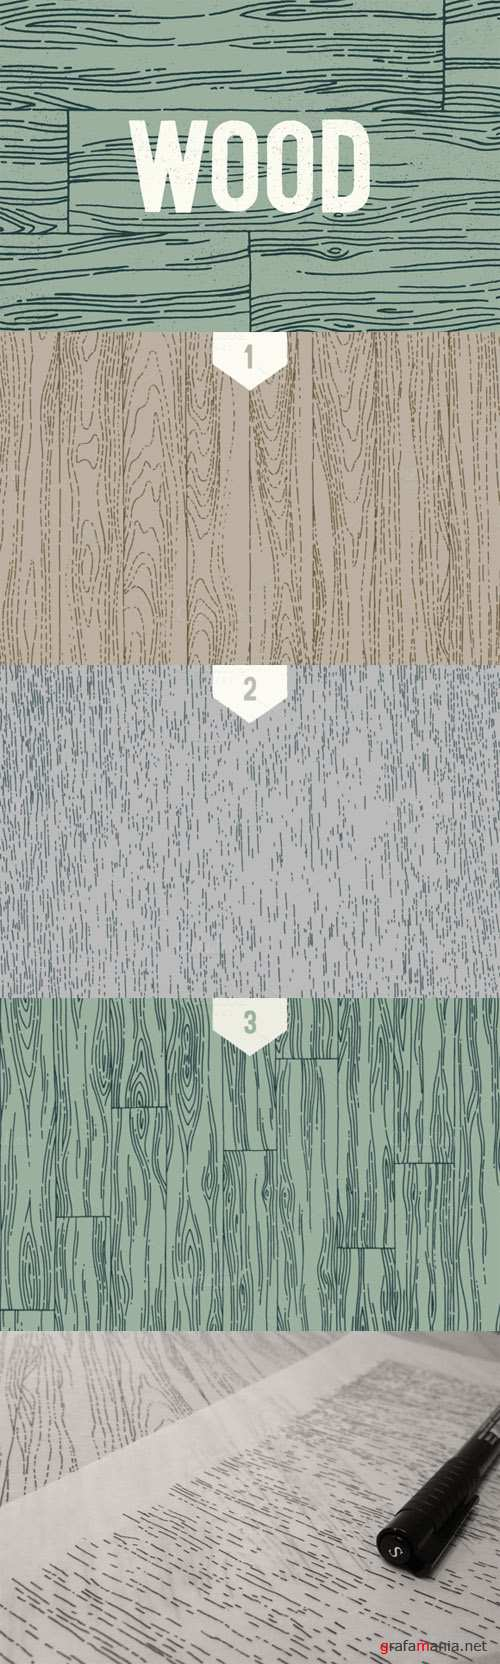 Creativemarket - 3 Wood Line Patterns - By hand 23387